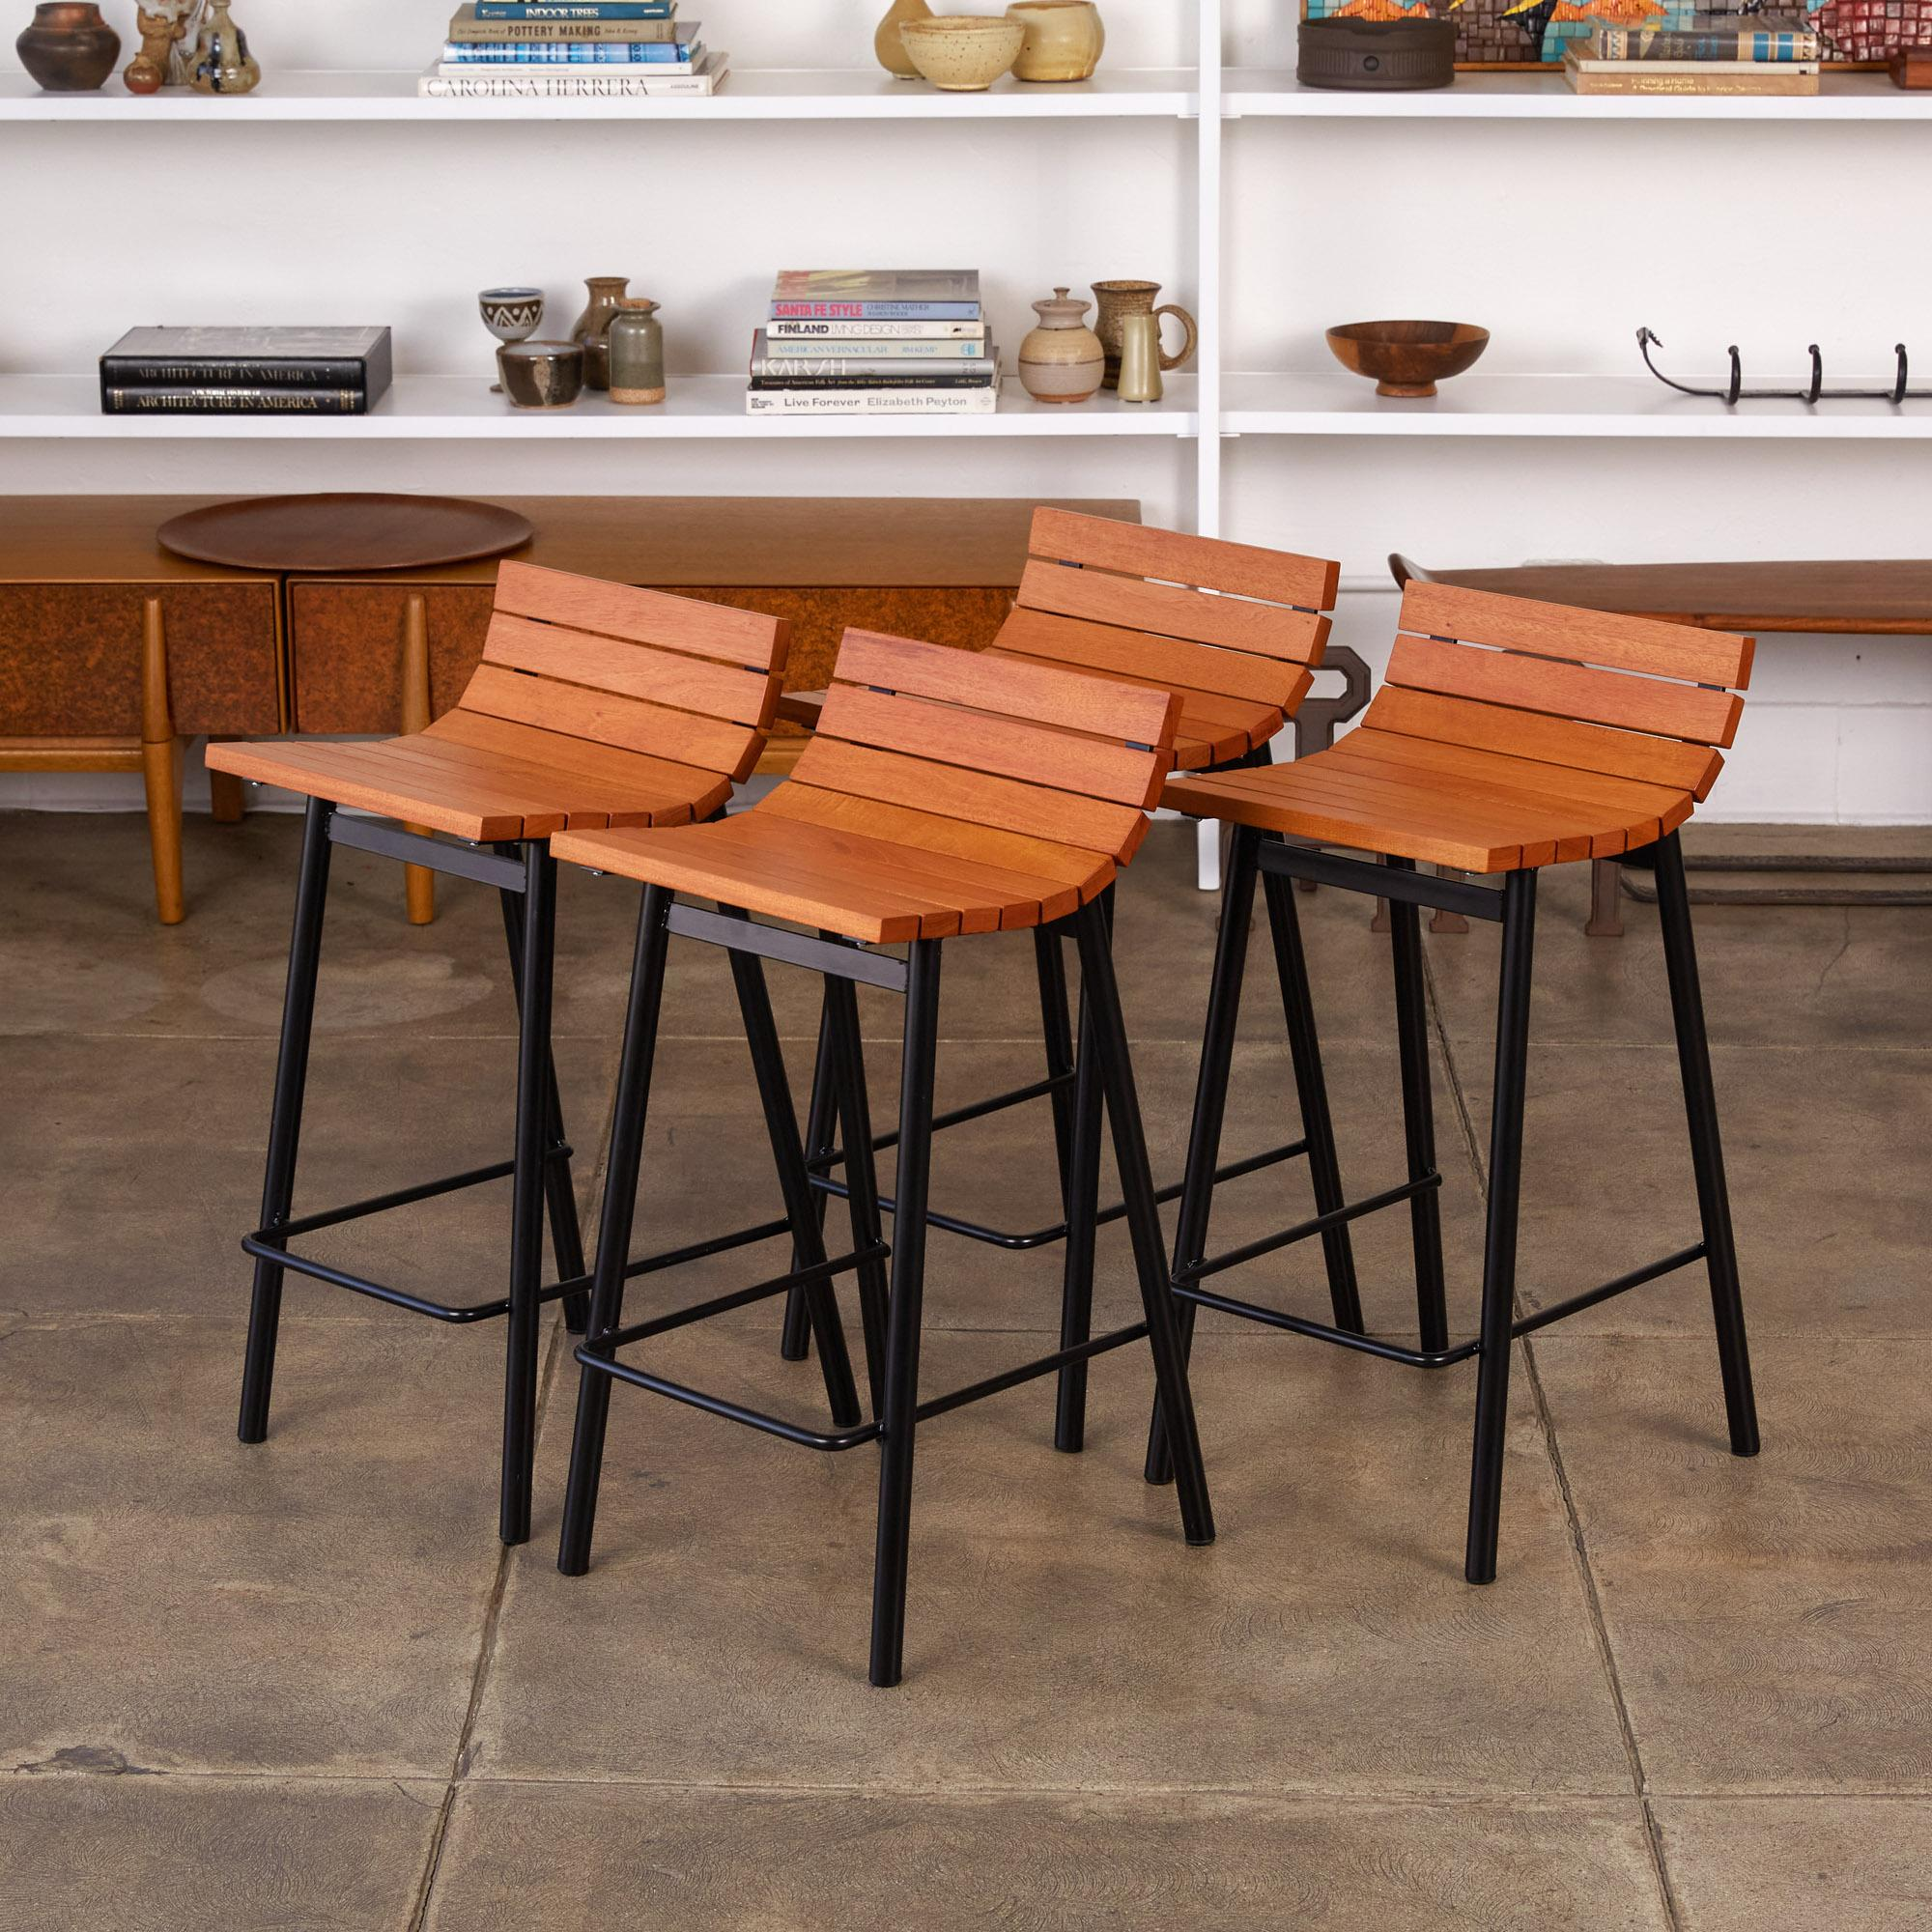 Counter Stools by Vista of California